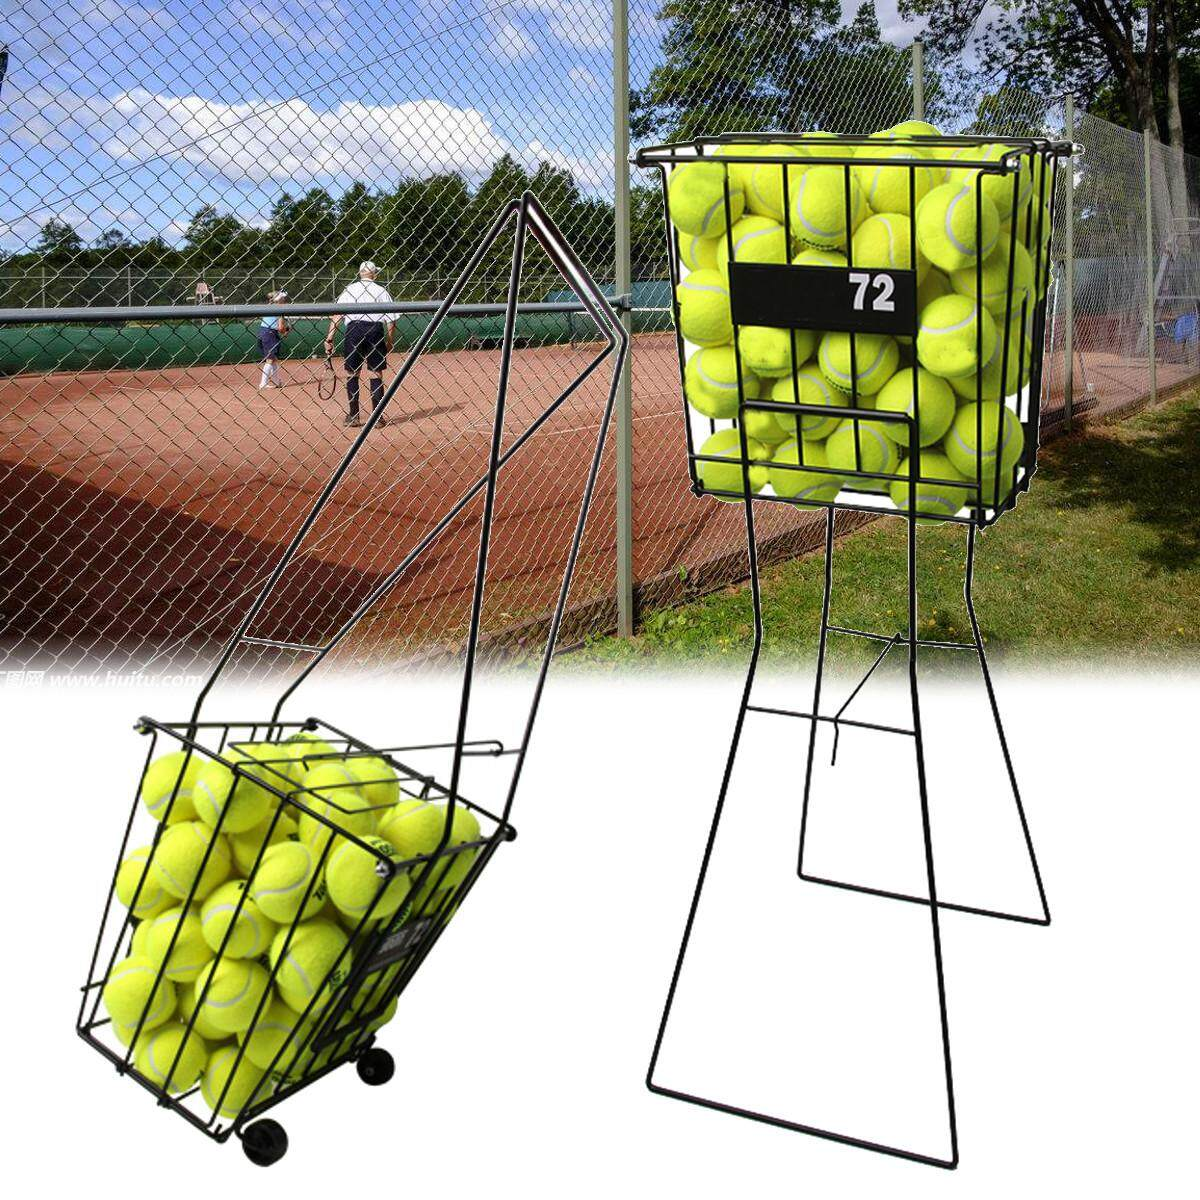 Tennis Sport Ball Pick Up Hopper Basket Portable Stand Storage Equipment By Glimmer.